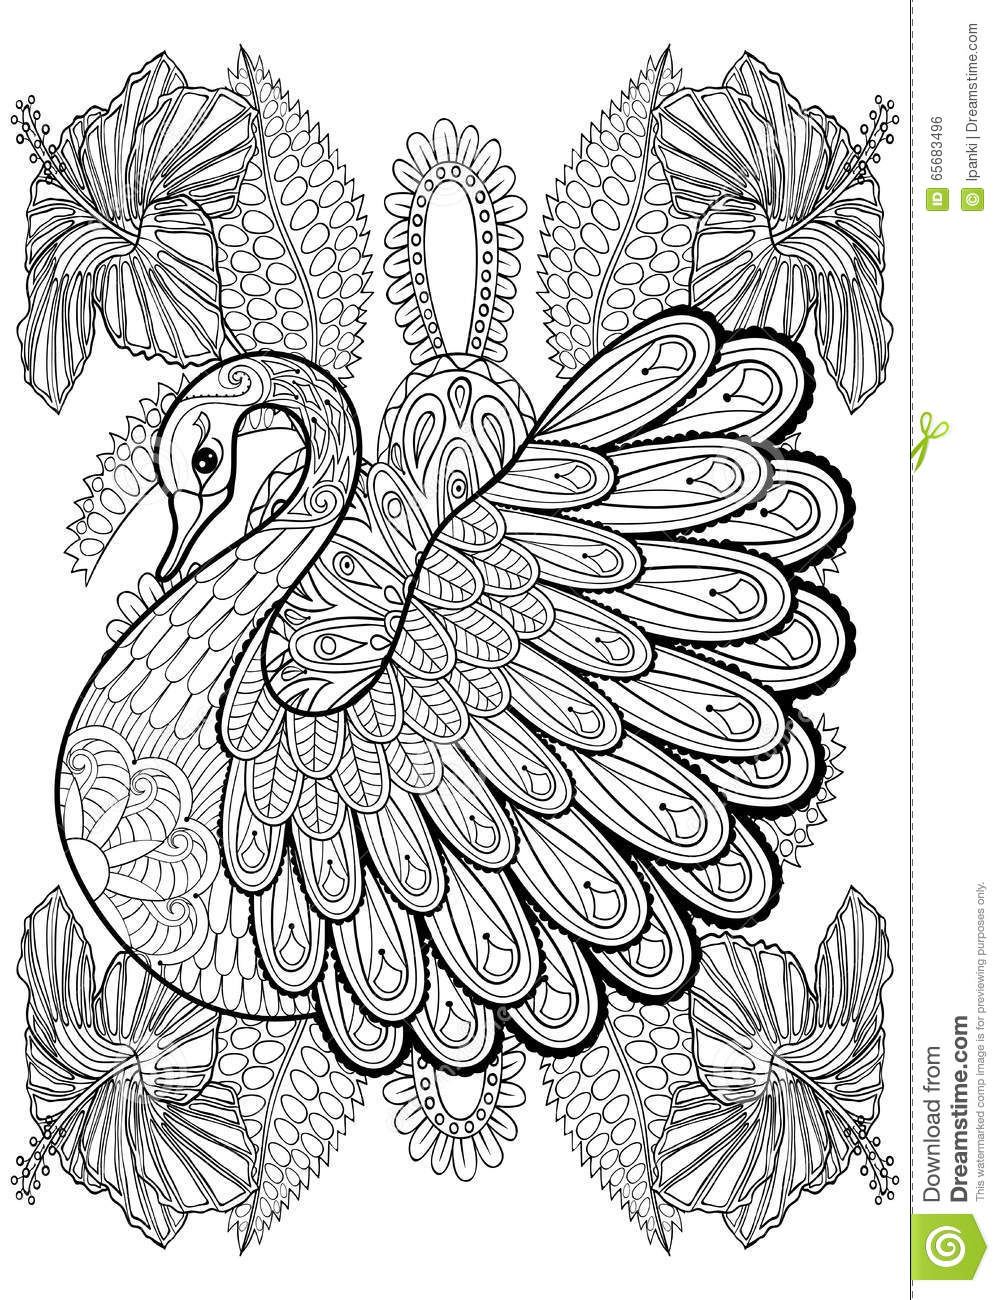 Zen coloring books for adults app - Royalty Free Vector Download Hand Drawing Artistic Swan In Flowers For Adult Coloring Pages